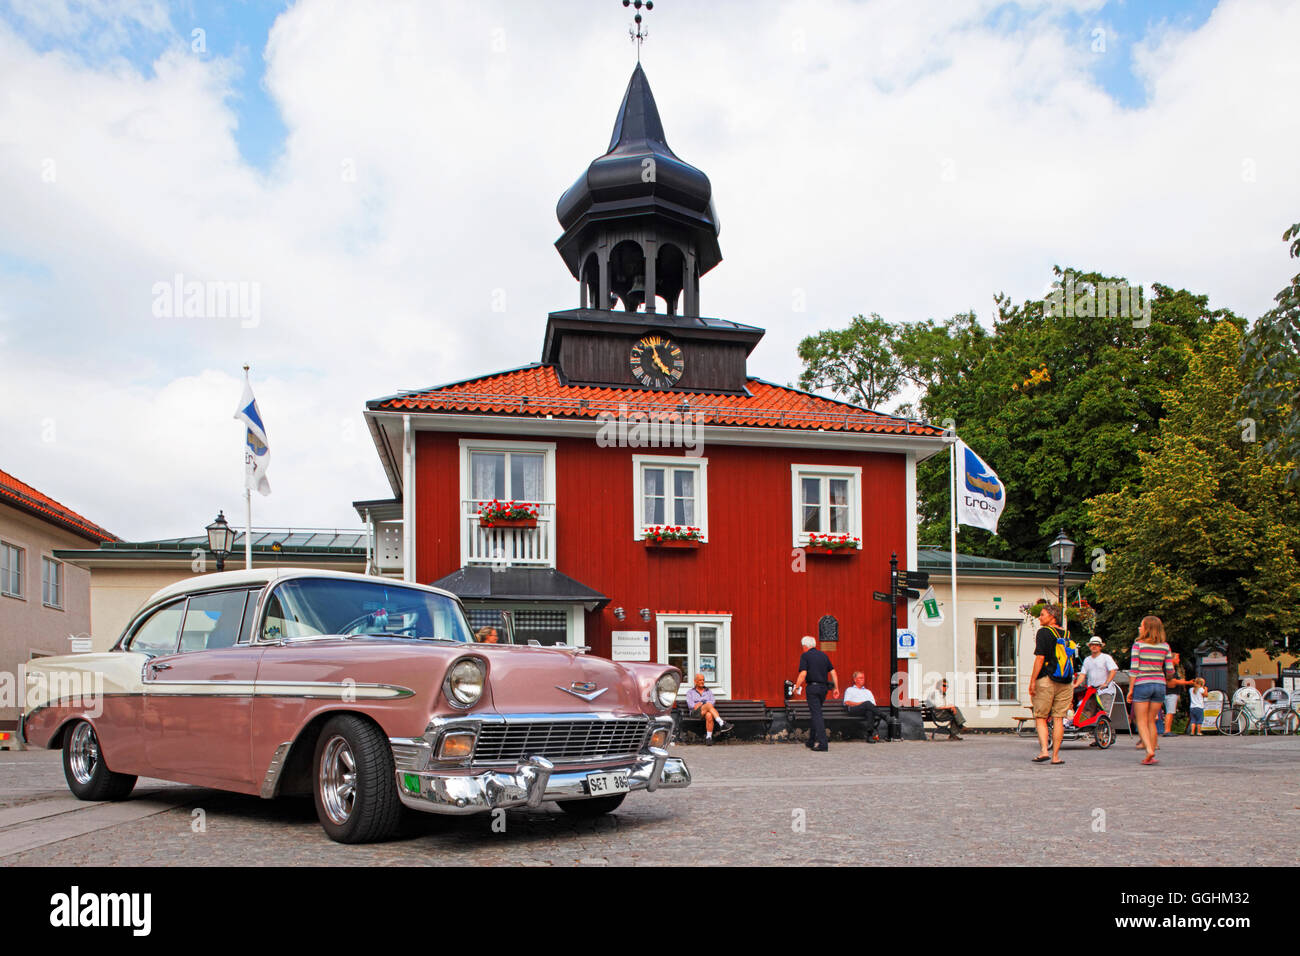 Classic car rallye and Trosa city hall, Trosa, Sweden - Stock Image